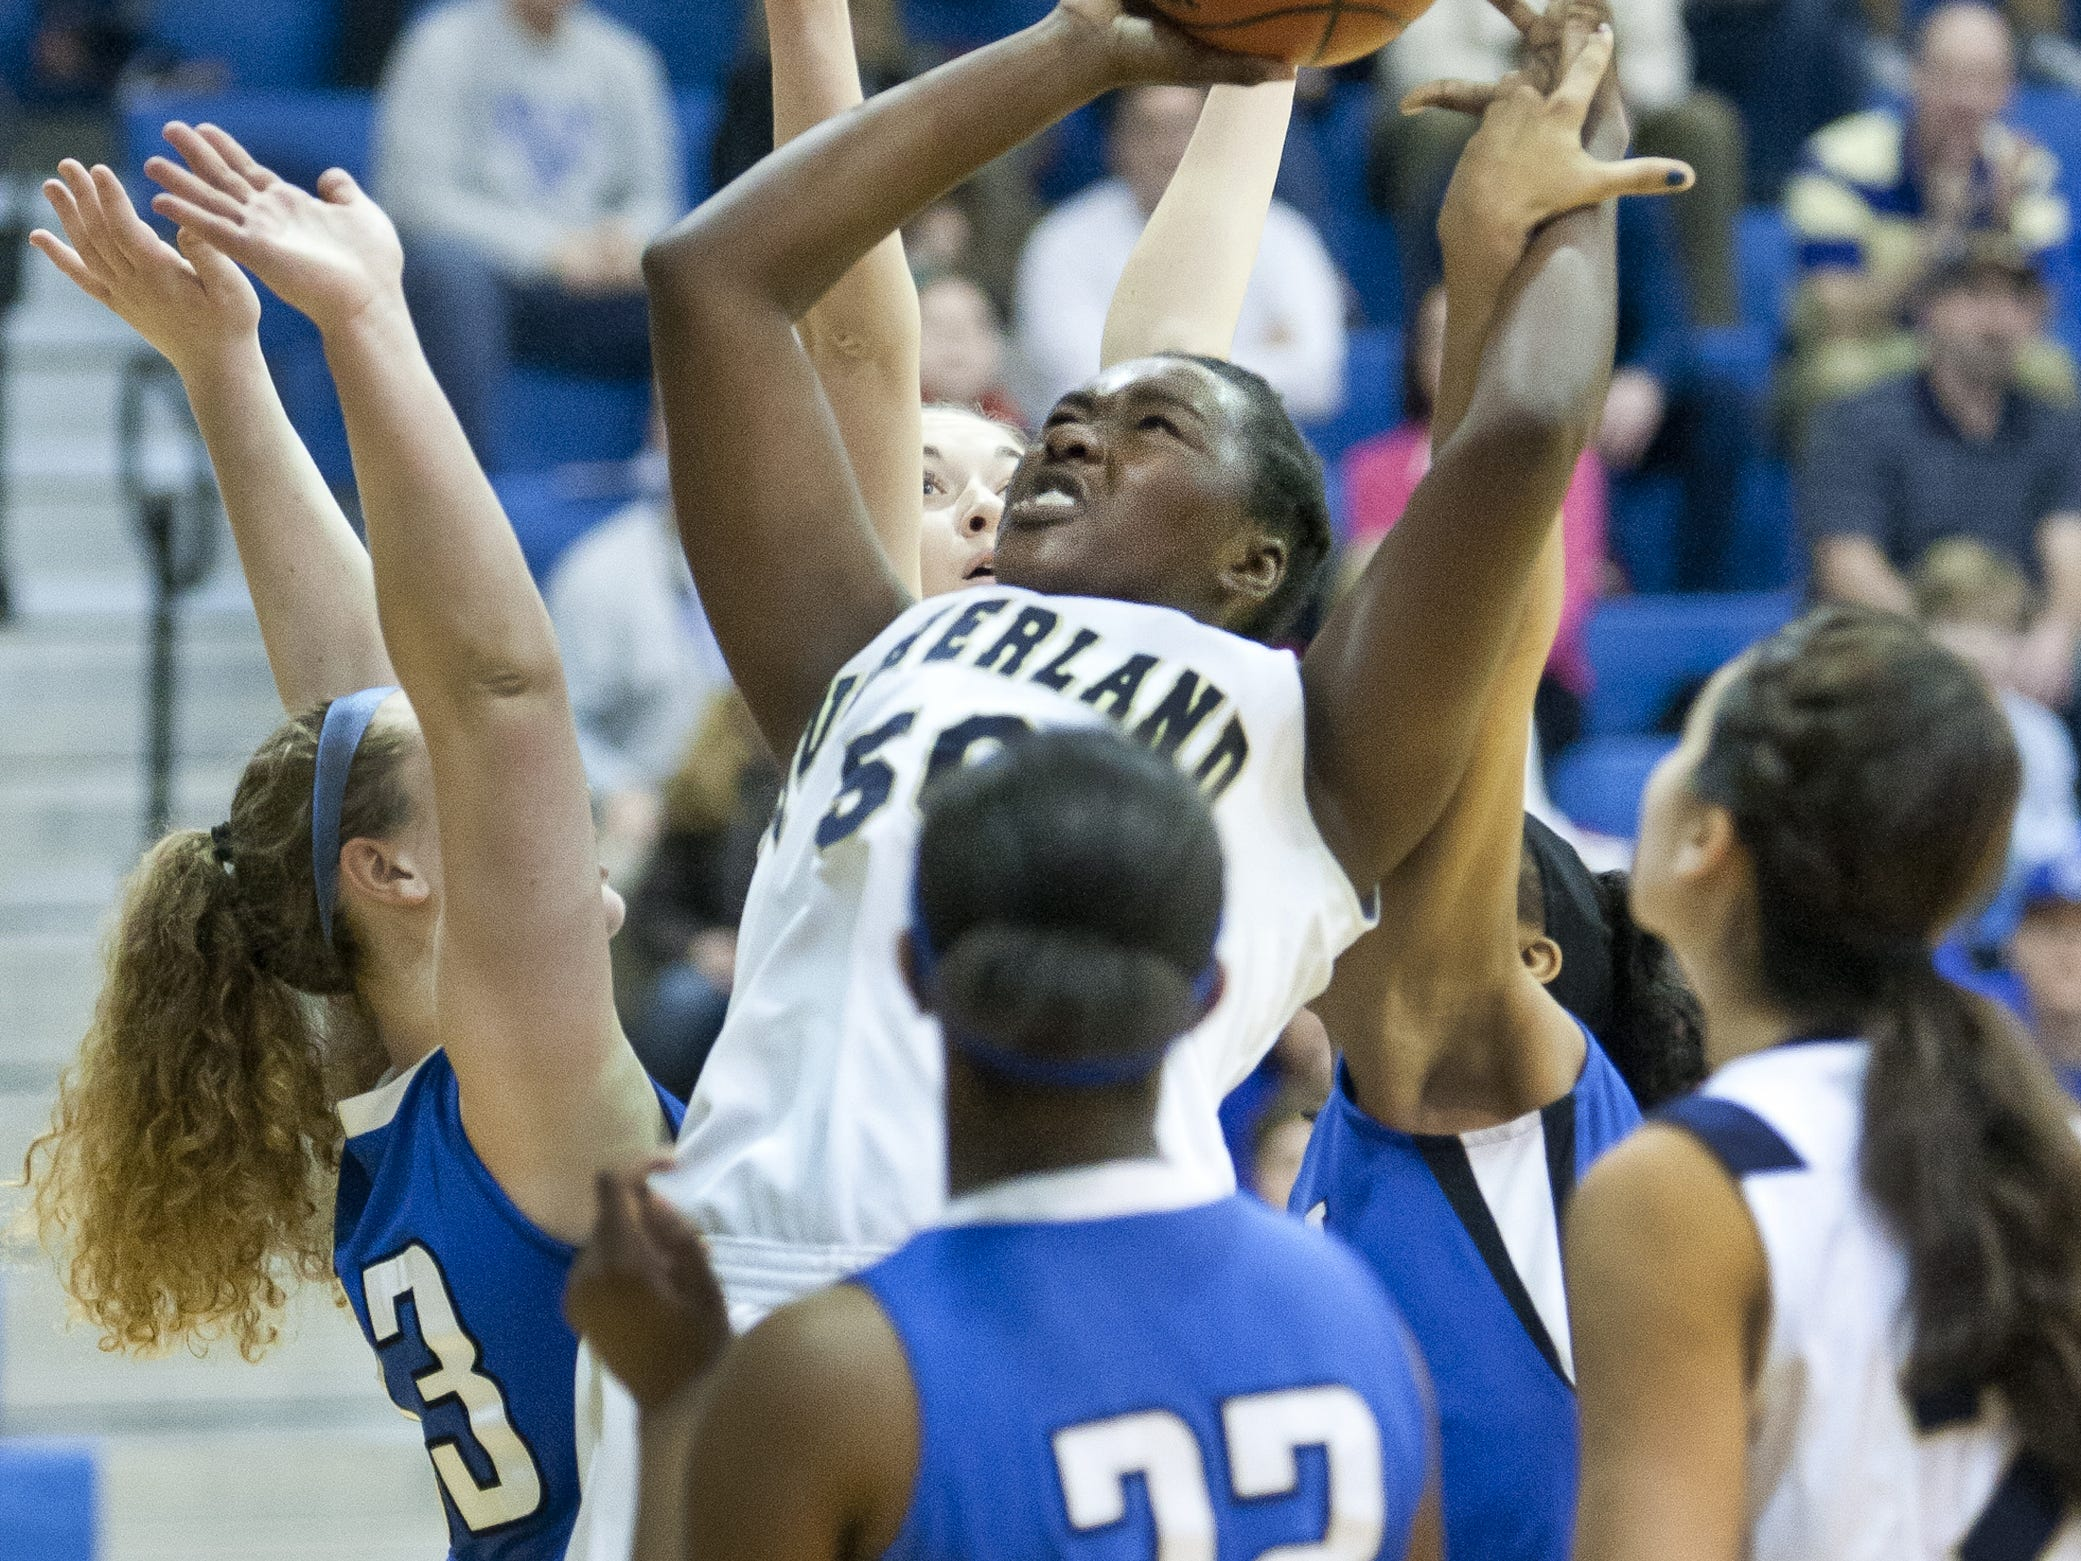 Pittsford Sutherland junior Santita Ebangwese has brought her game to a new level this season.